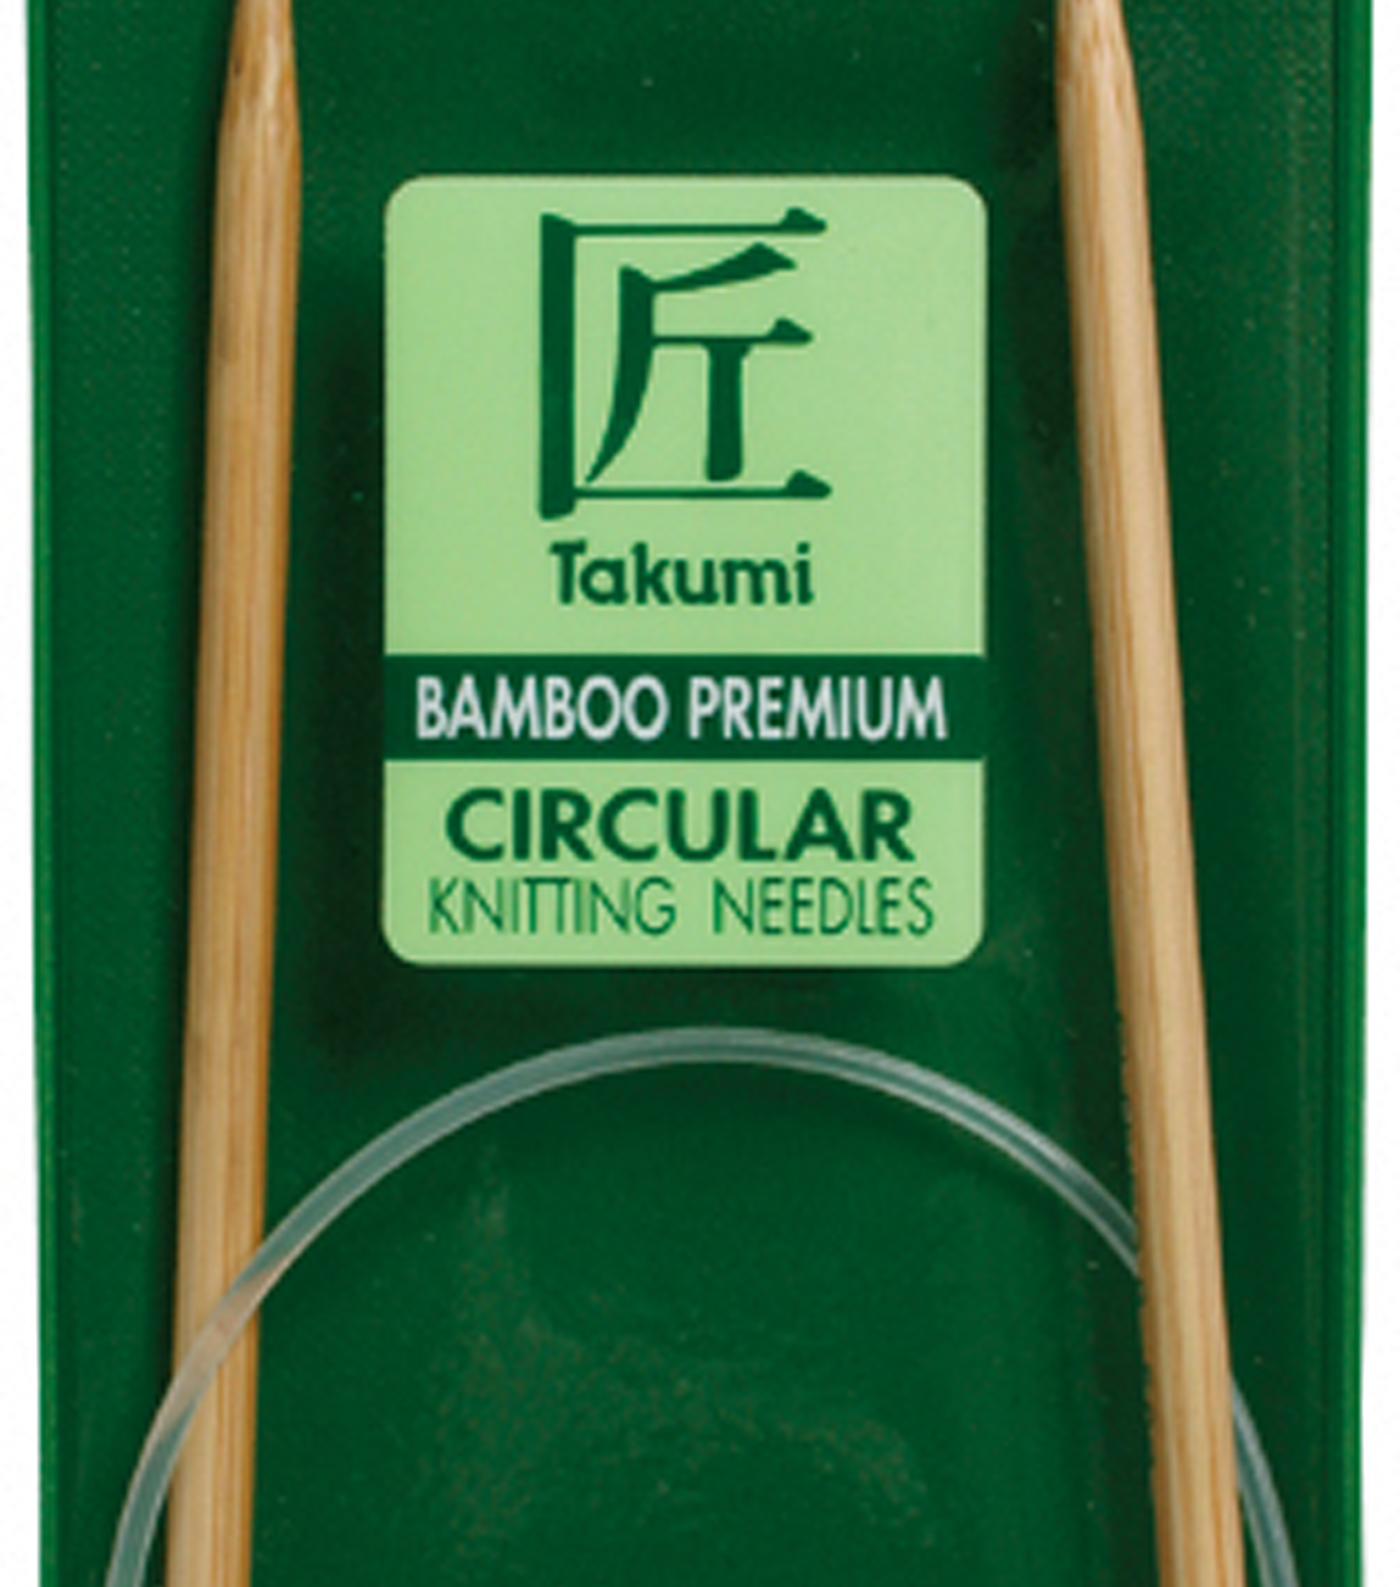 Takumi Bamboo Circular Knitting Needles 24\u0022-Size 4/3.5mm